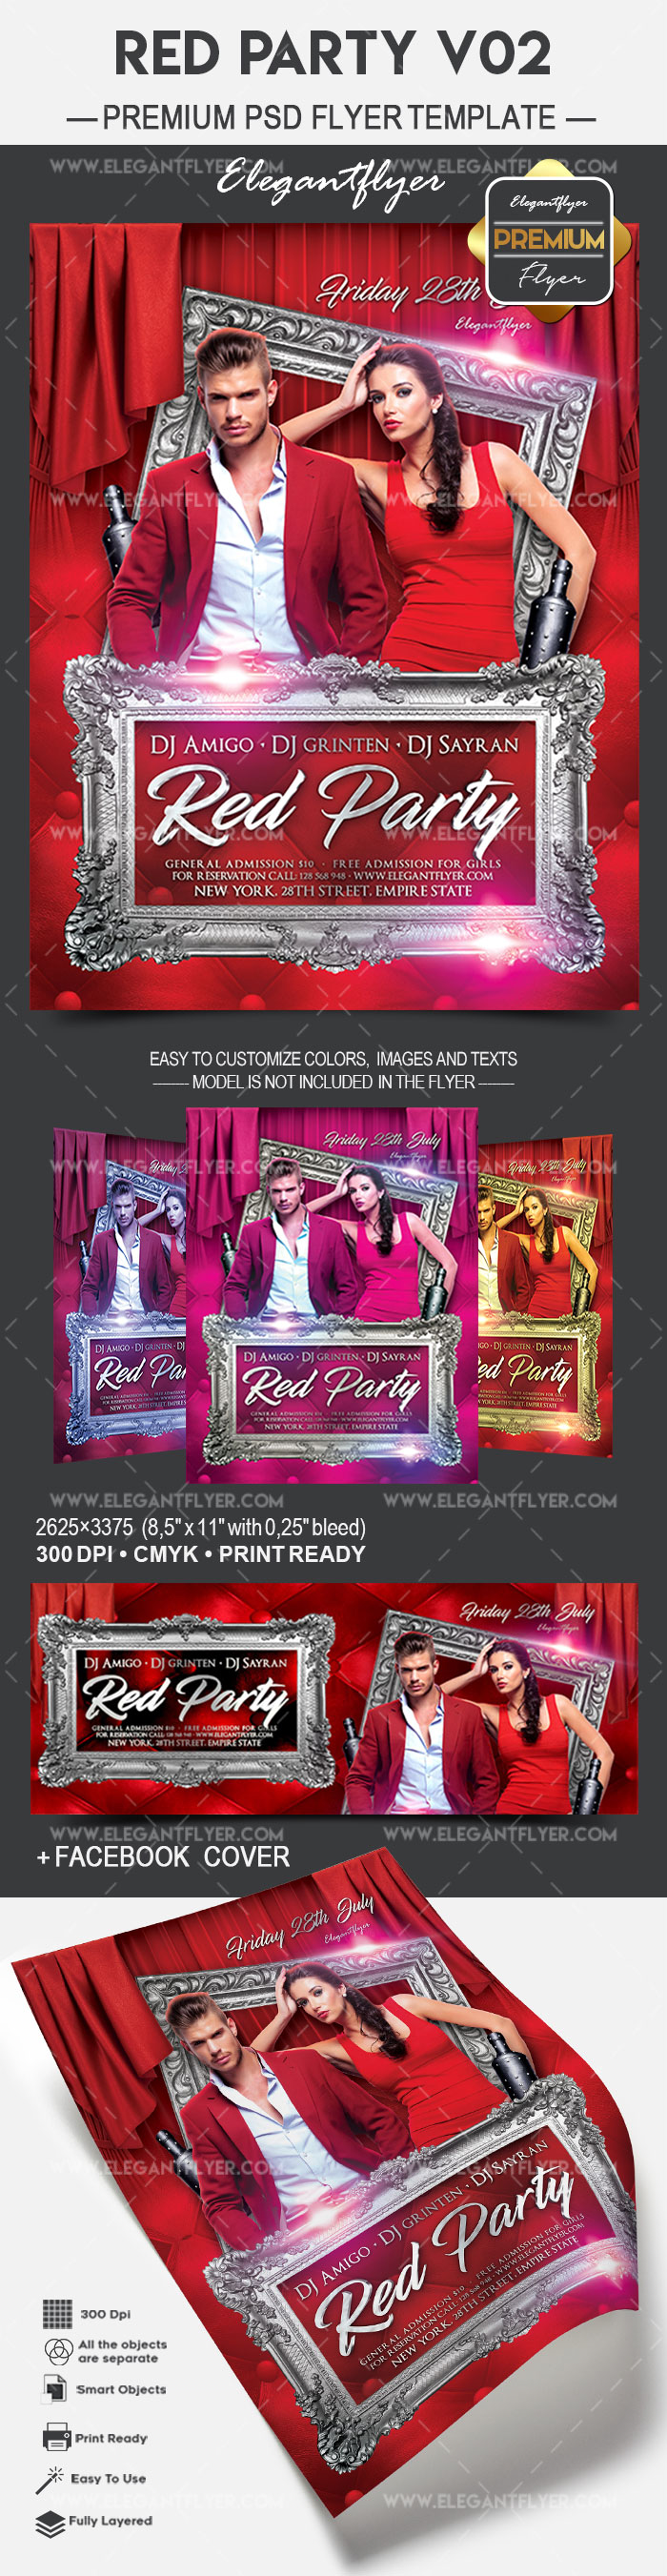 Red Party V02 – Flyer PSD Template